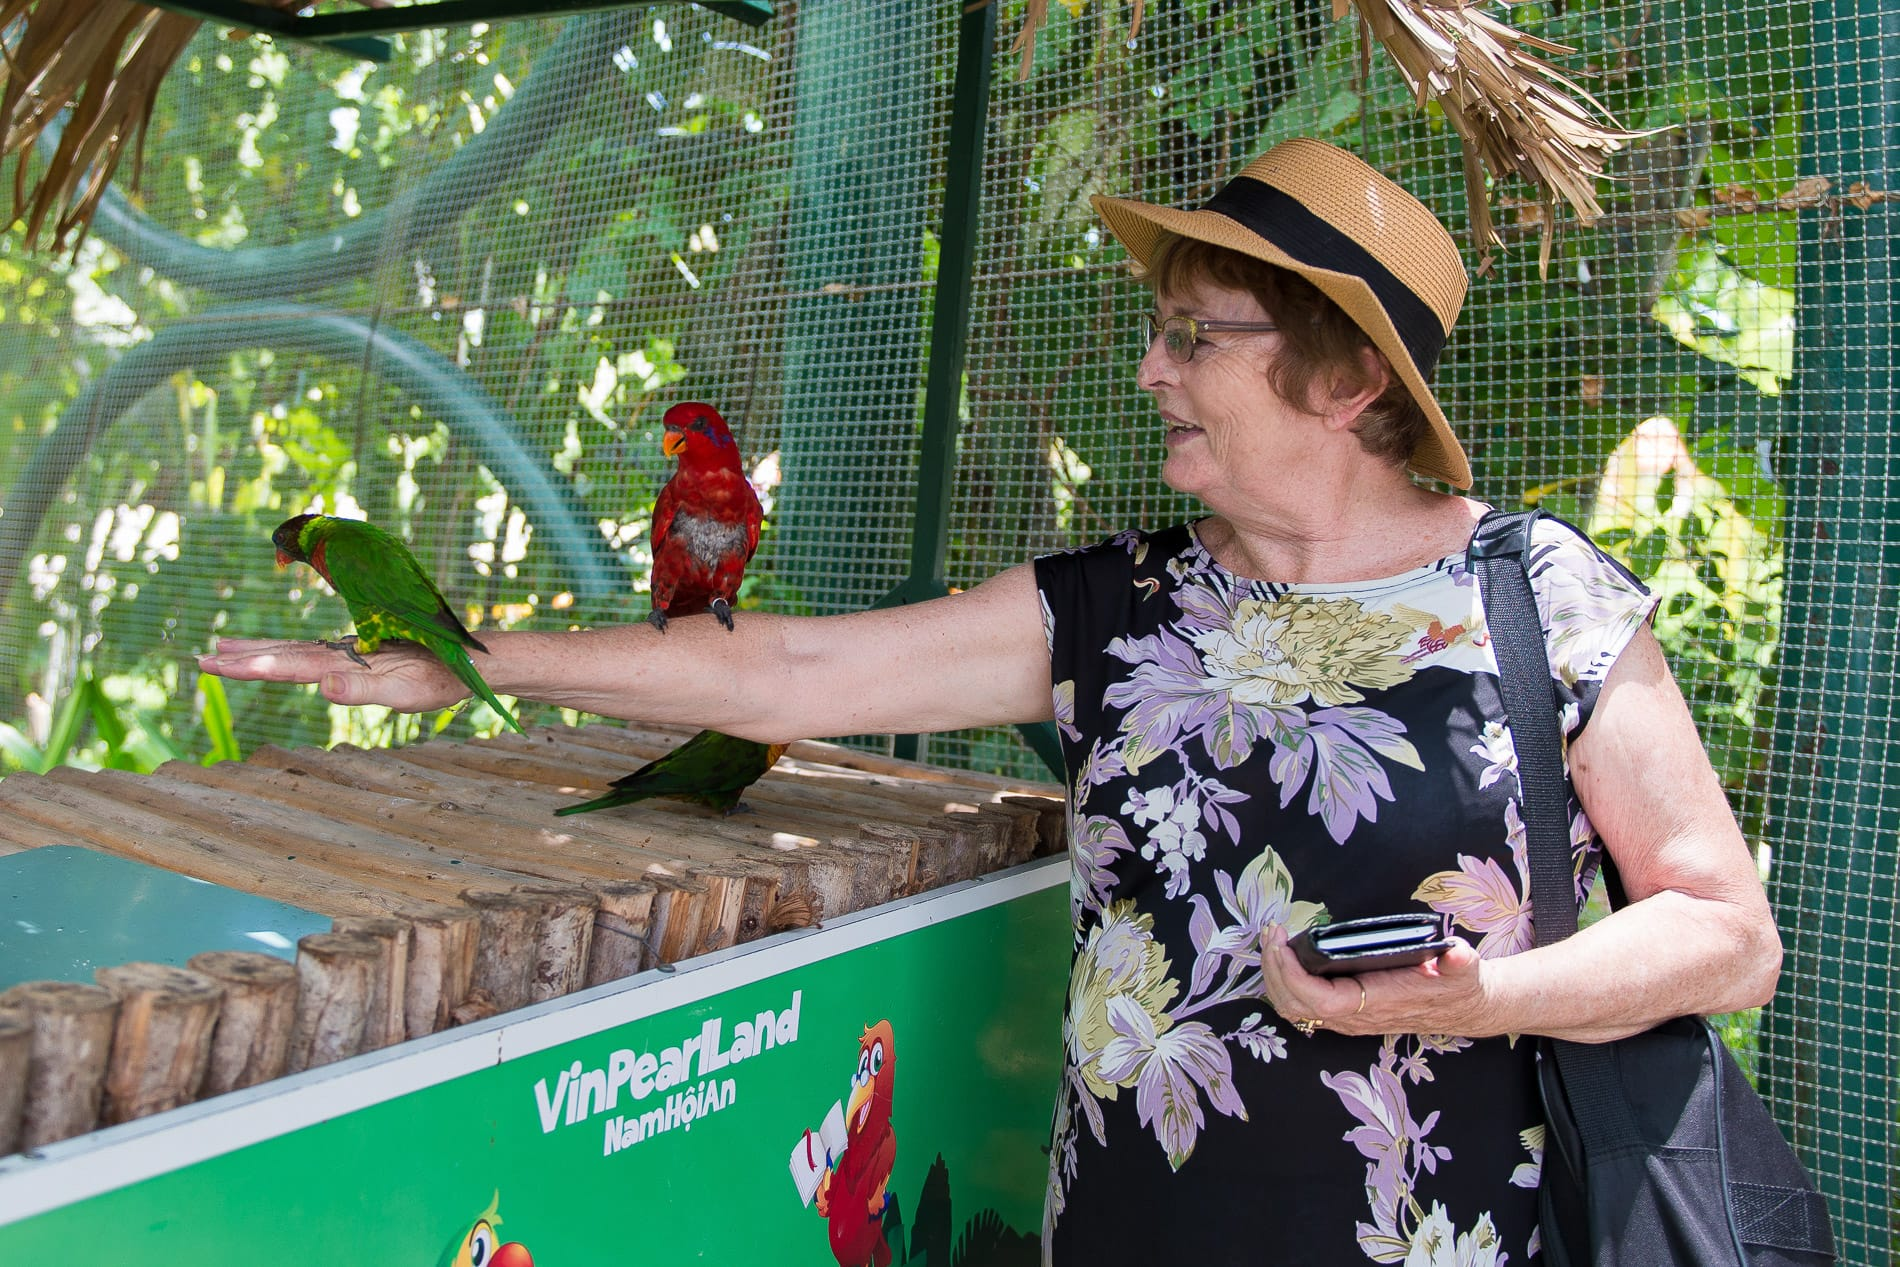 A tourist feeding the birds